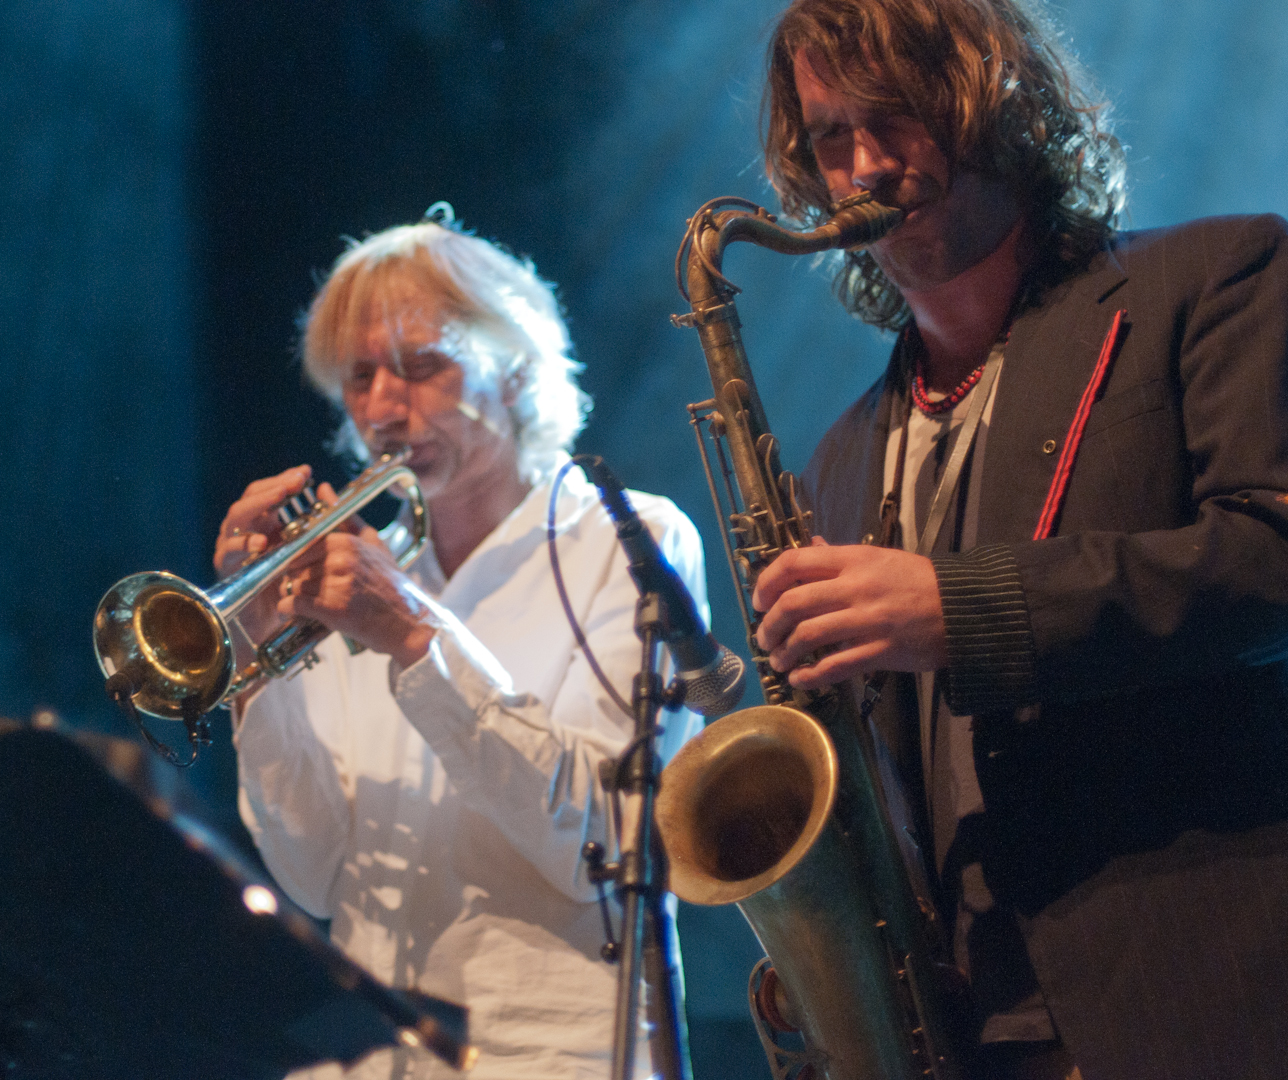 Erik Truffaz and Ilhan Ersahin with Bugge Wesseltoft at the Oslo Jazz Festival